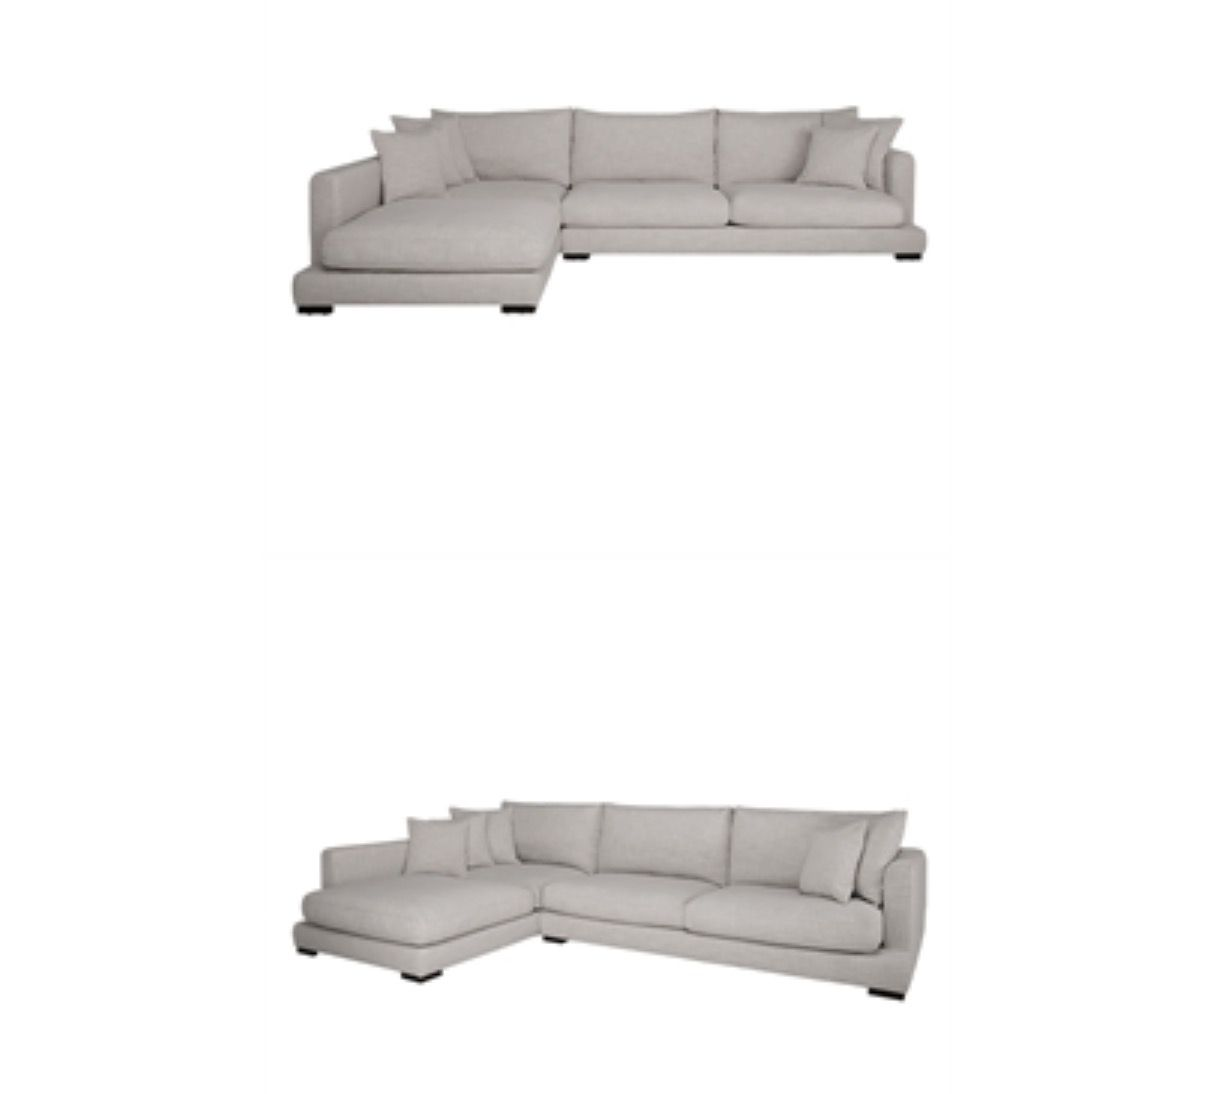 Hamilton Modular Sofa By Freedom Furniture Leather Sofa Bed White Leather Sofas White Leather Sofa Bed